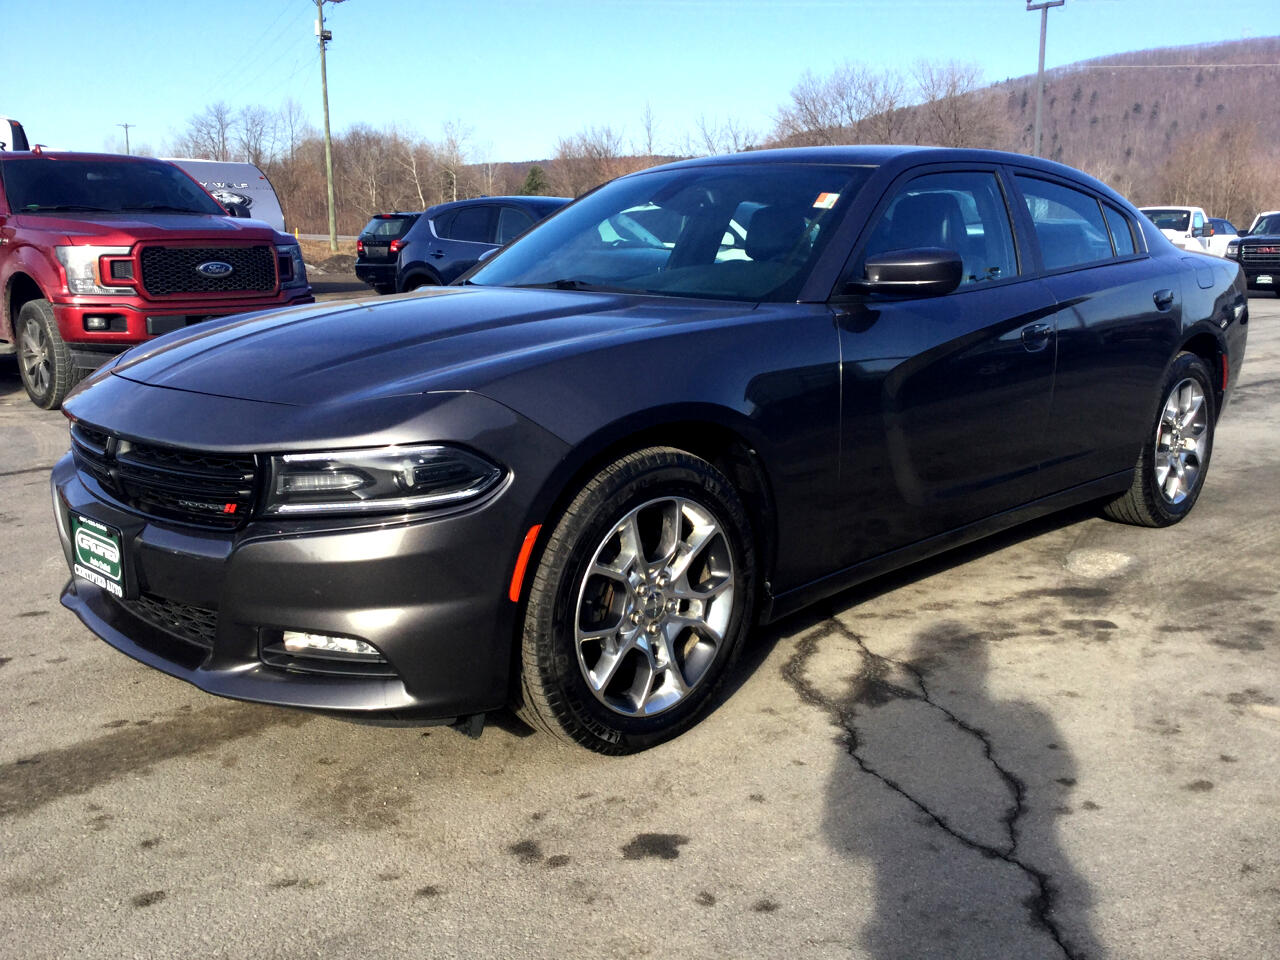 Dodge Charger SXT AWD 2015